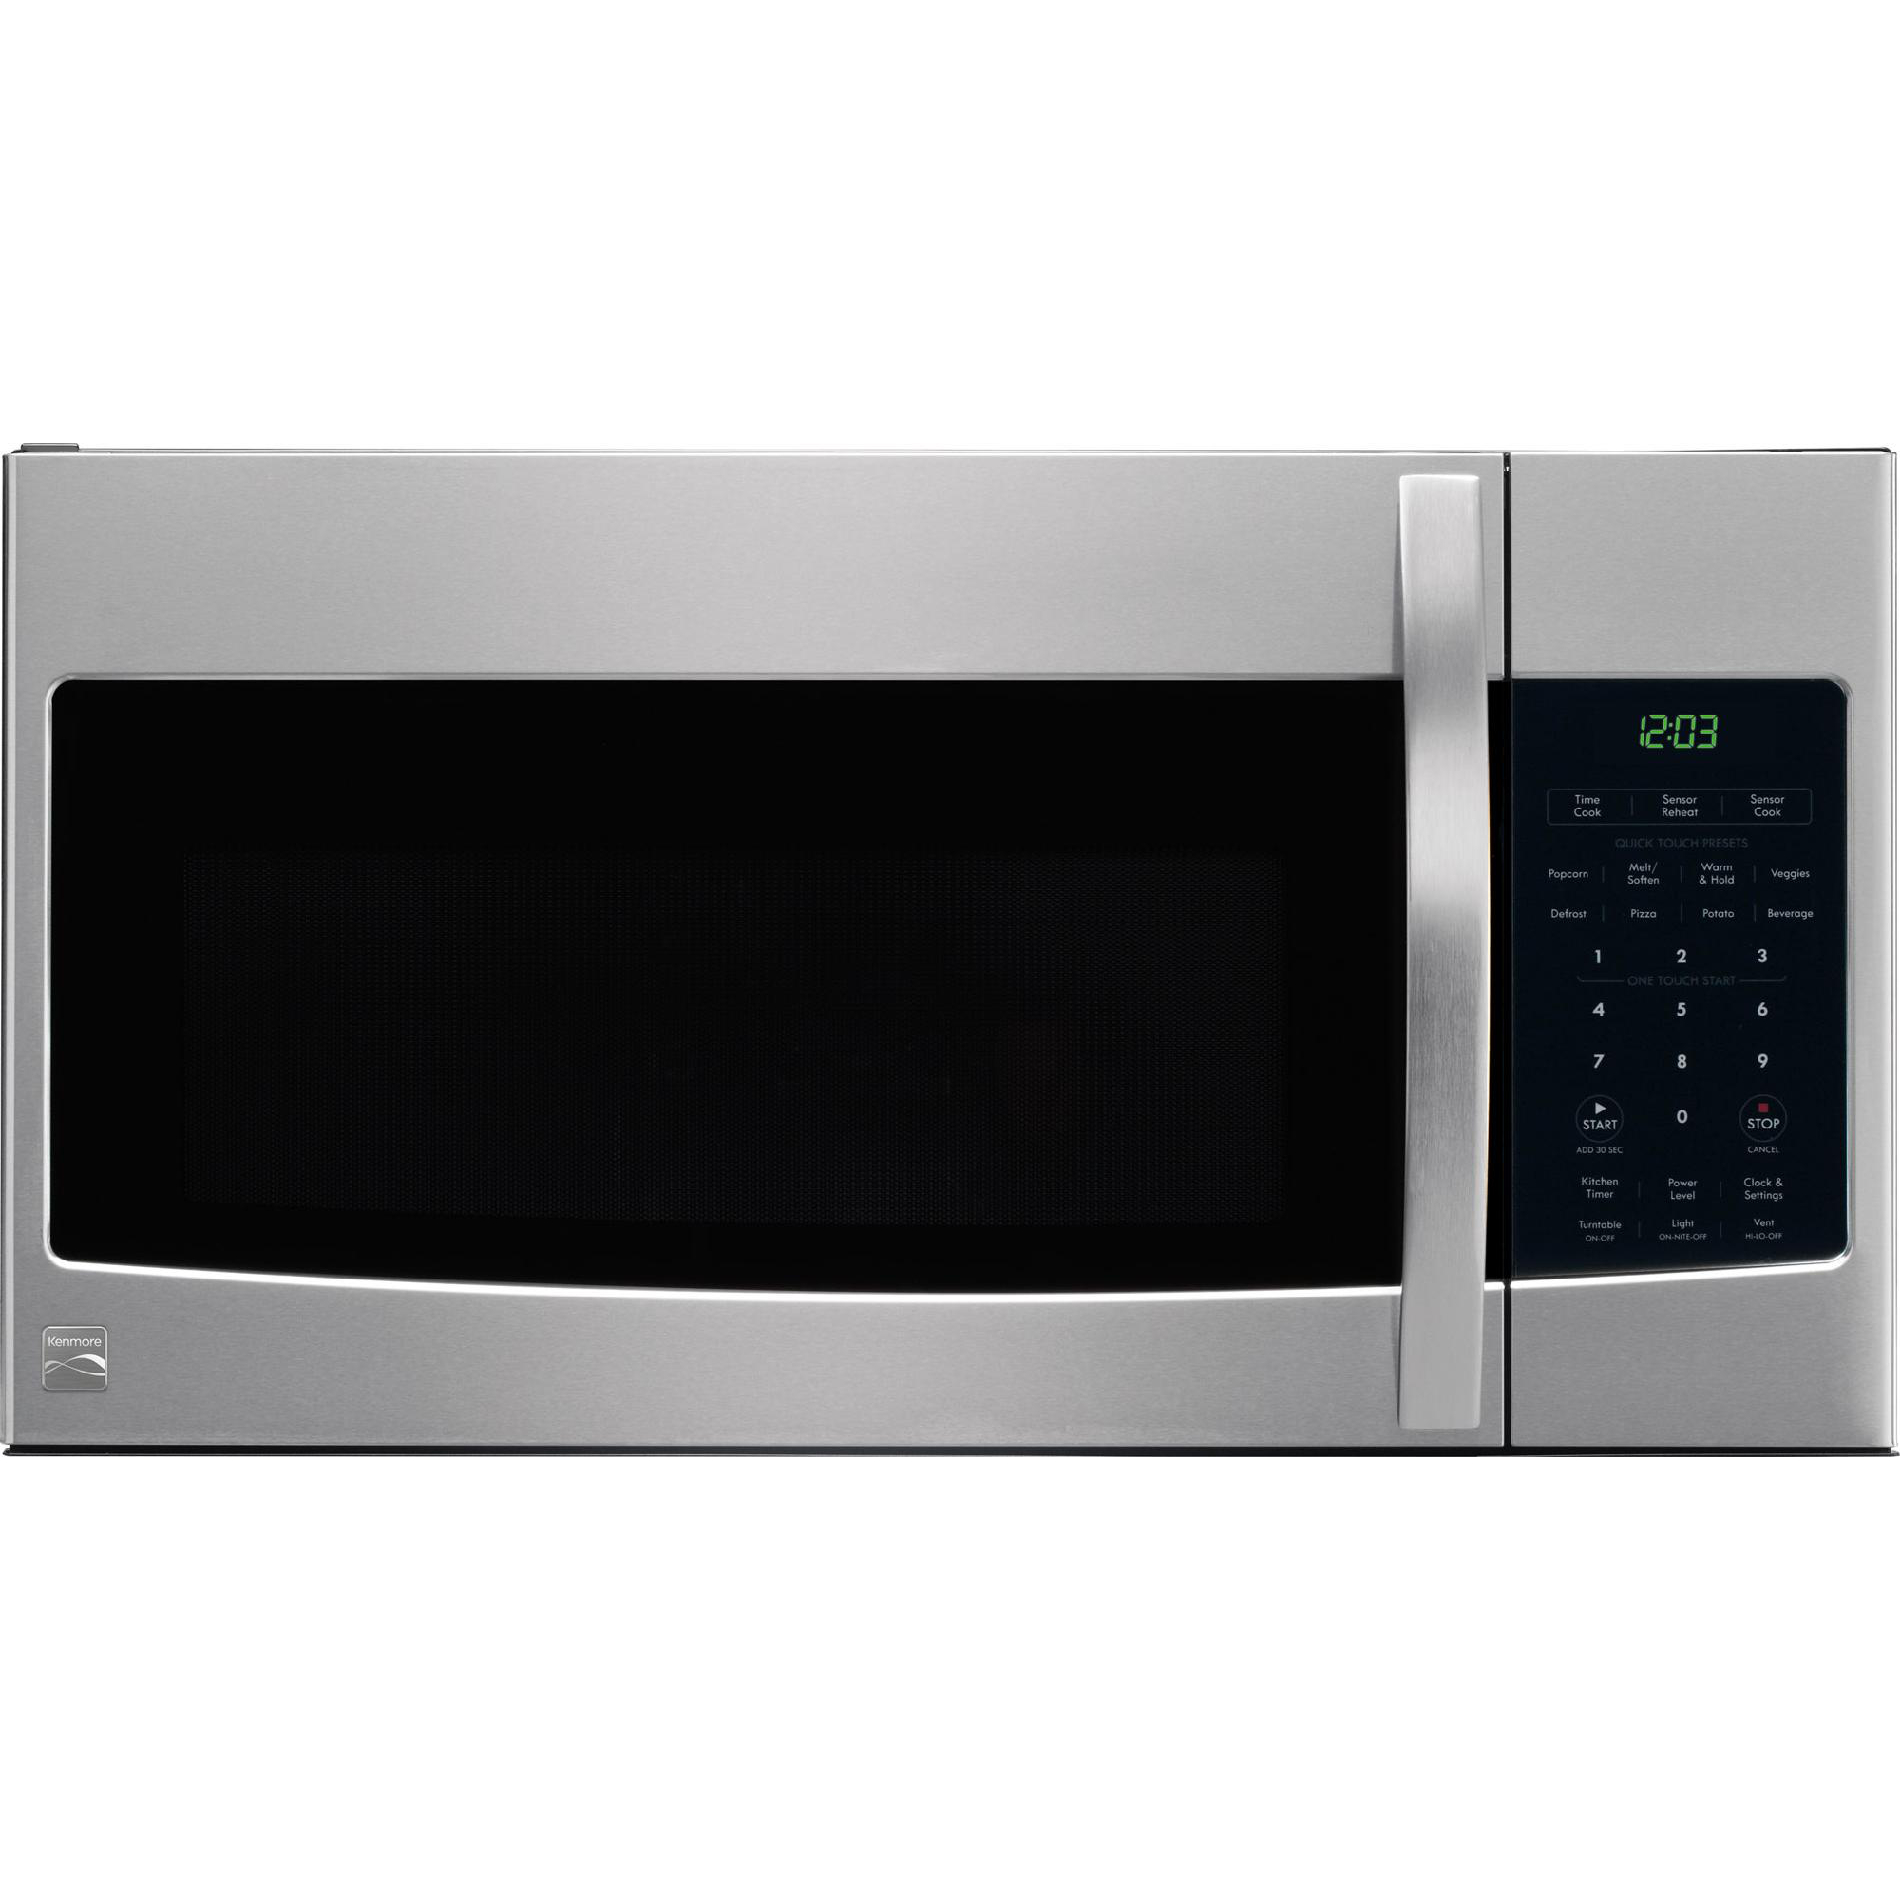 microwaves from all top brands at sears